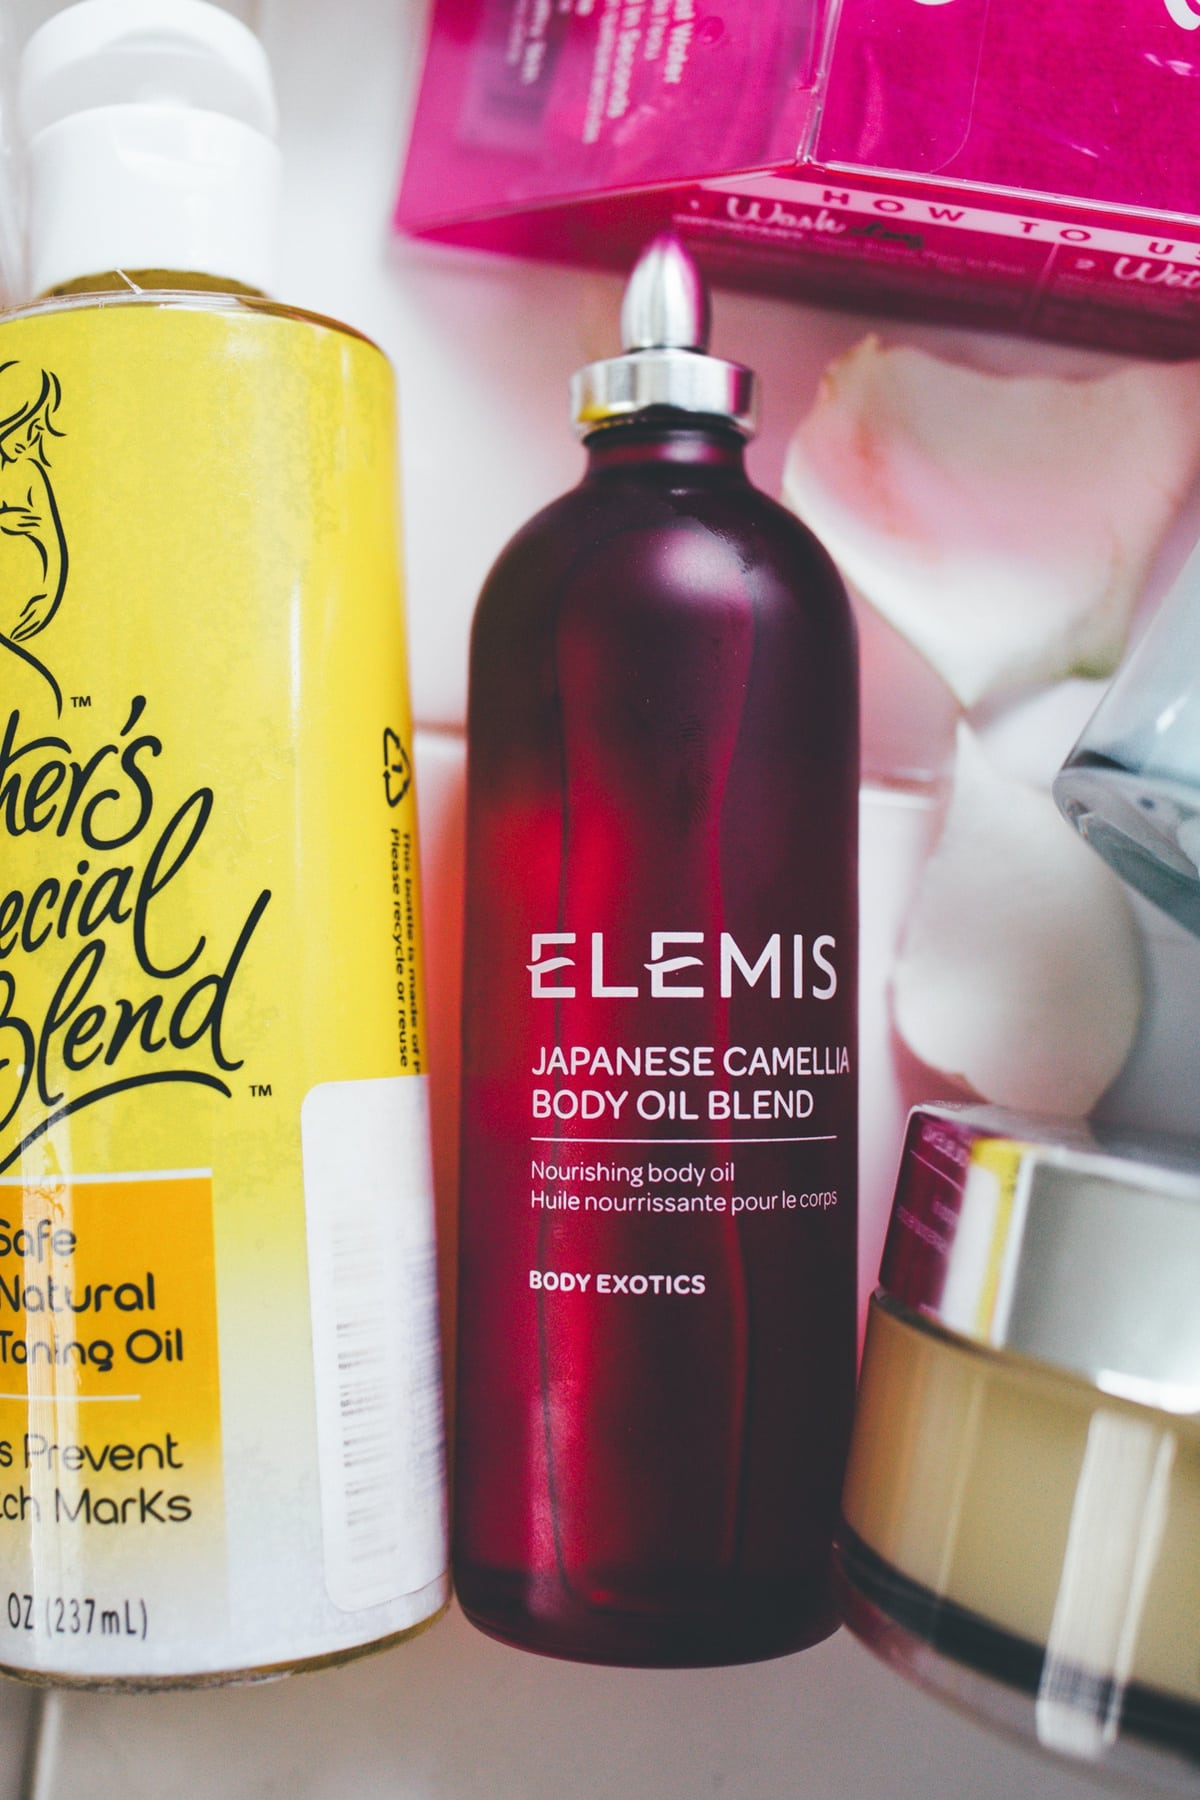 Safe Skincare product for pregnant Elemis body oil blend